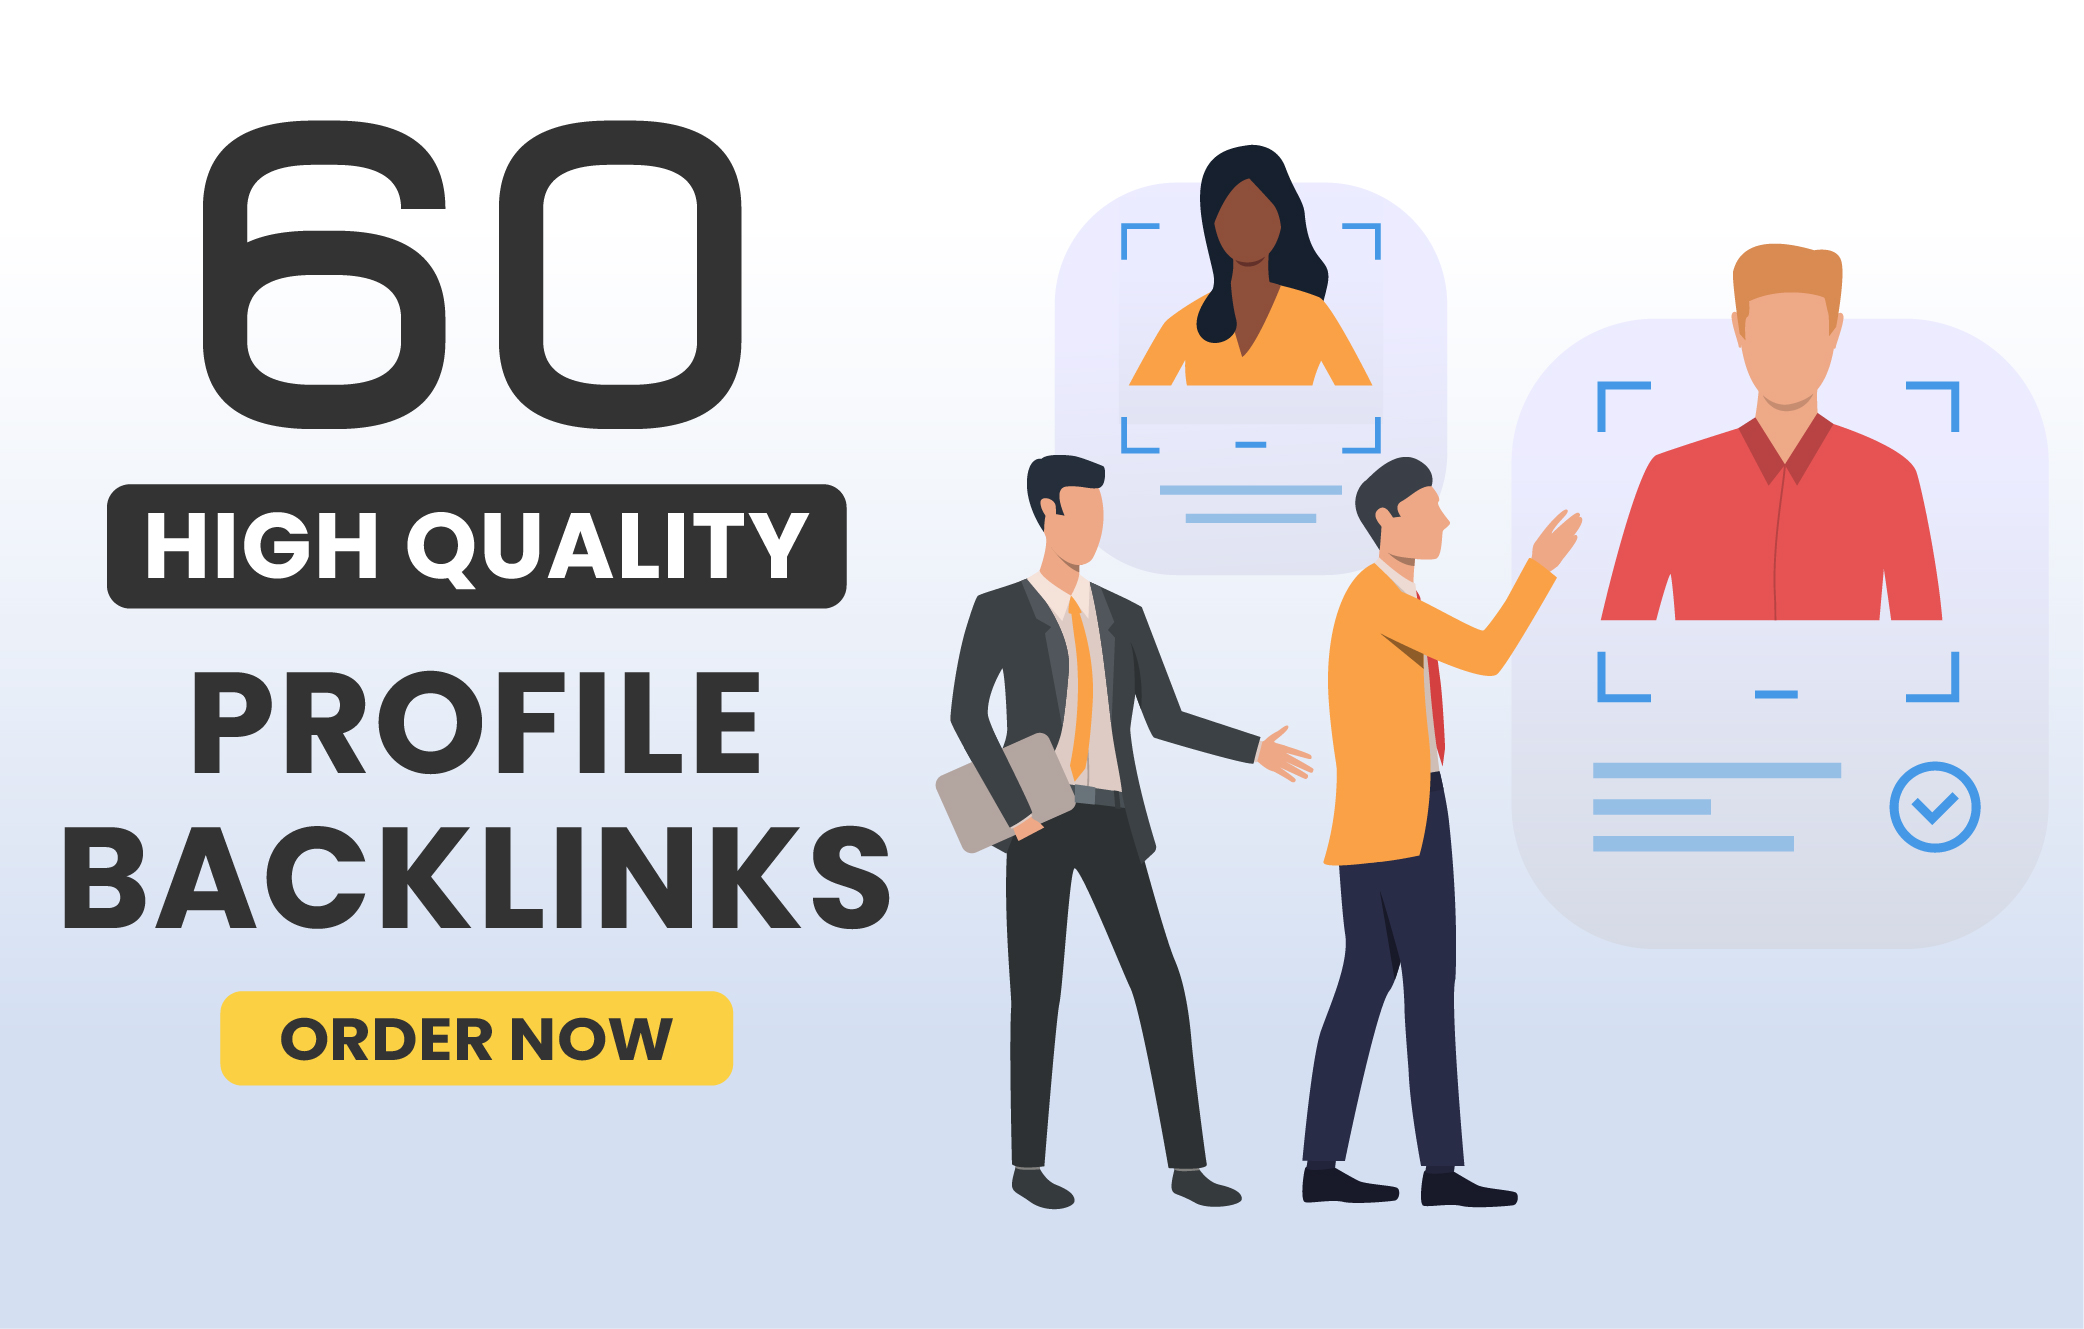 I will make 60 Profile Backlinks with High Quality & Accurate Details